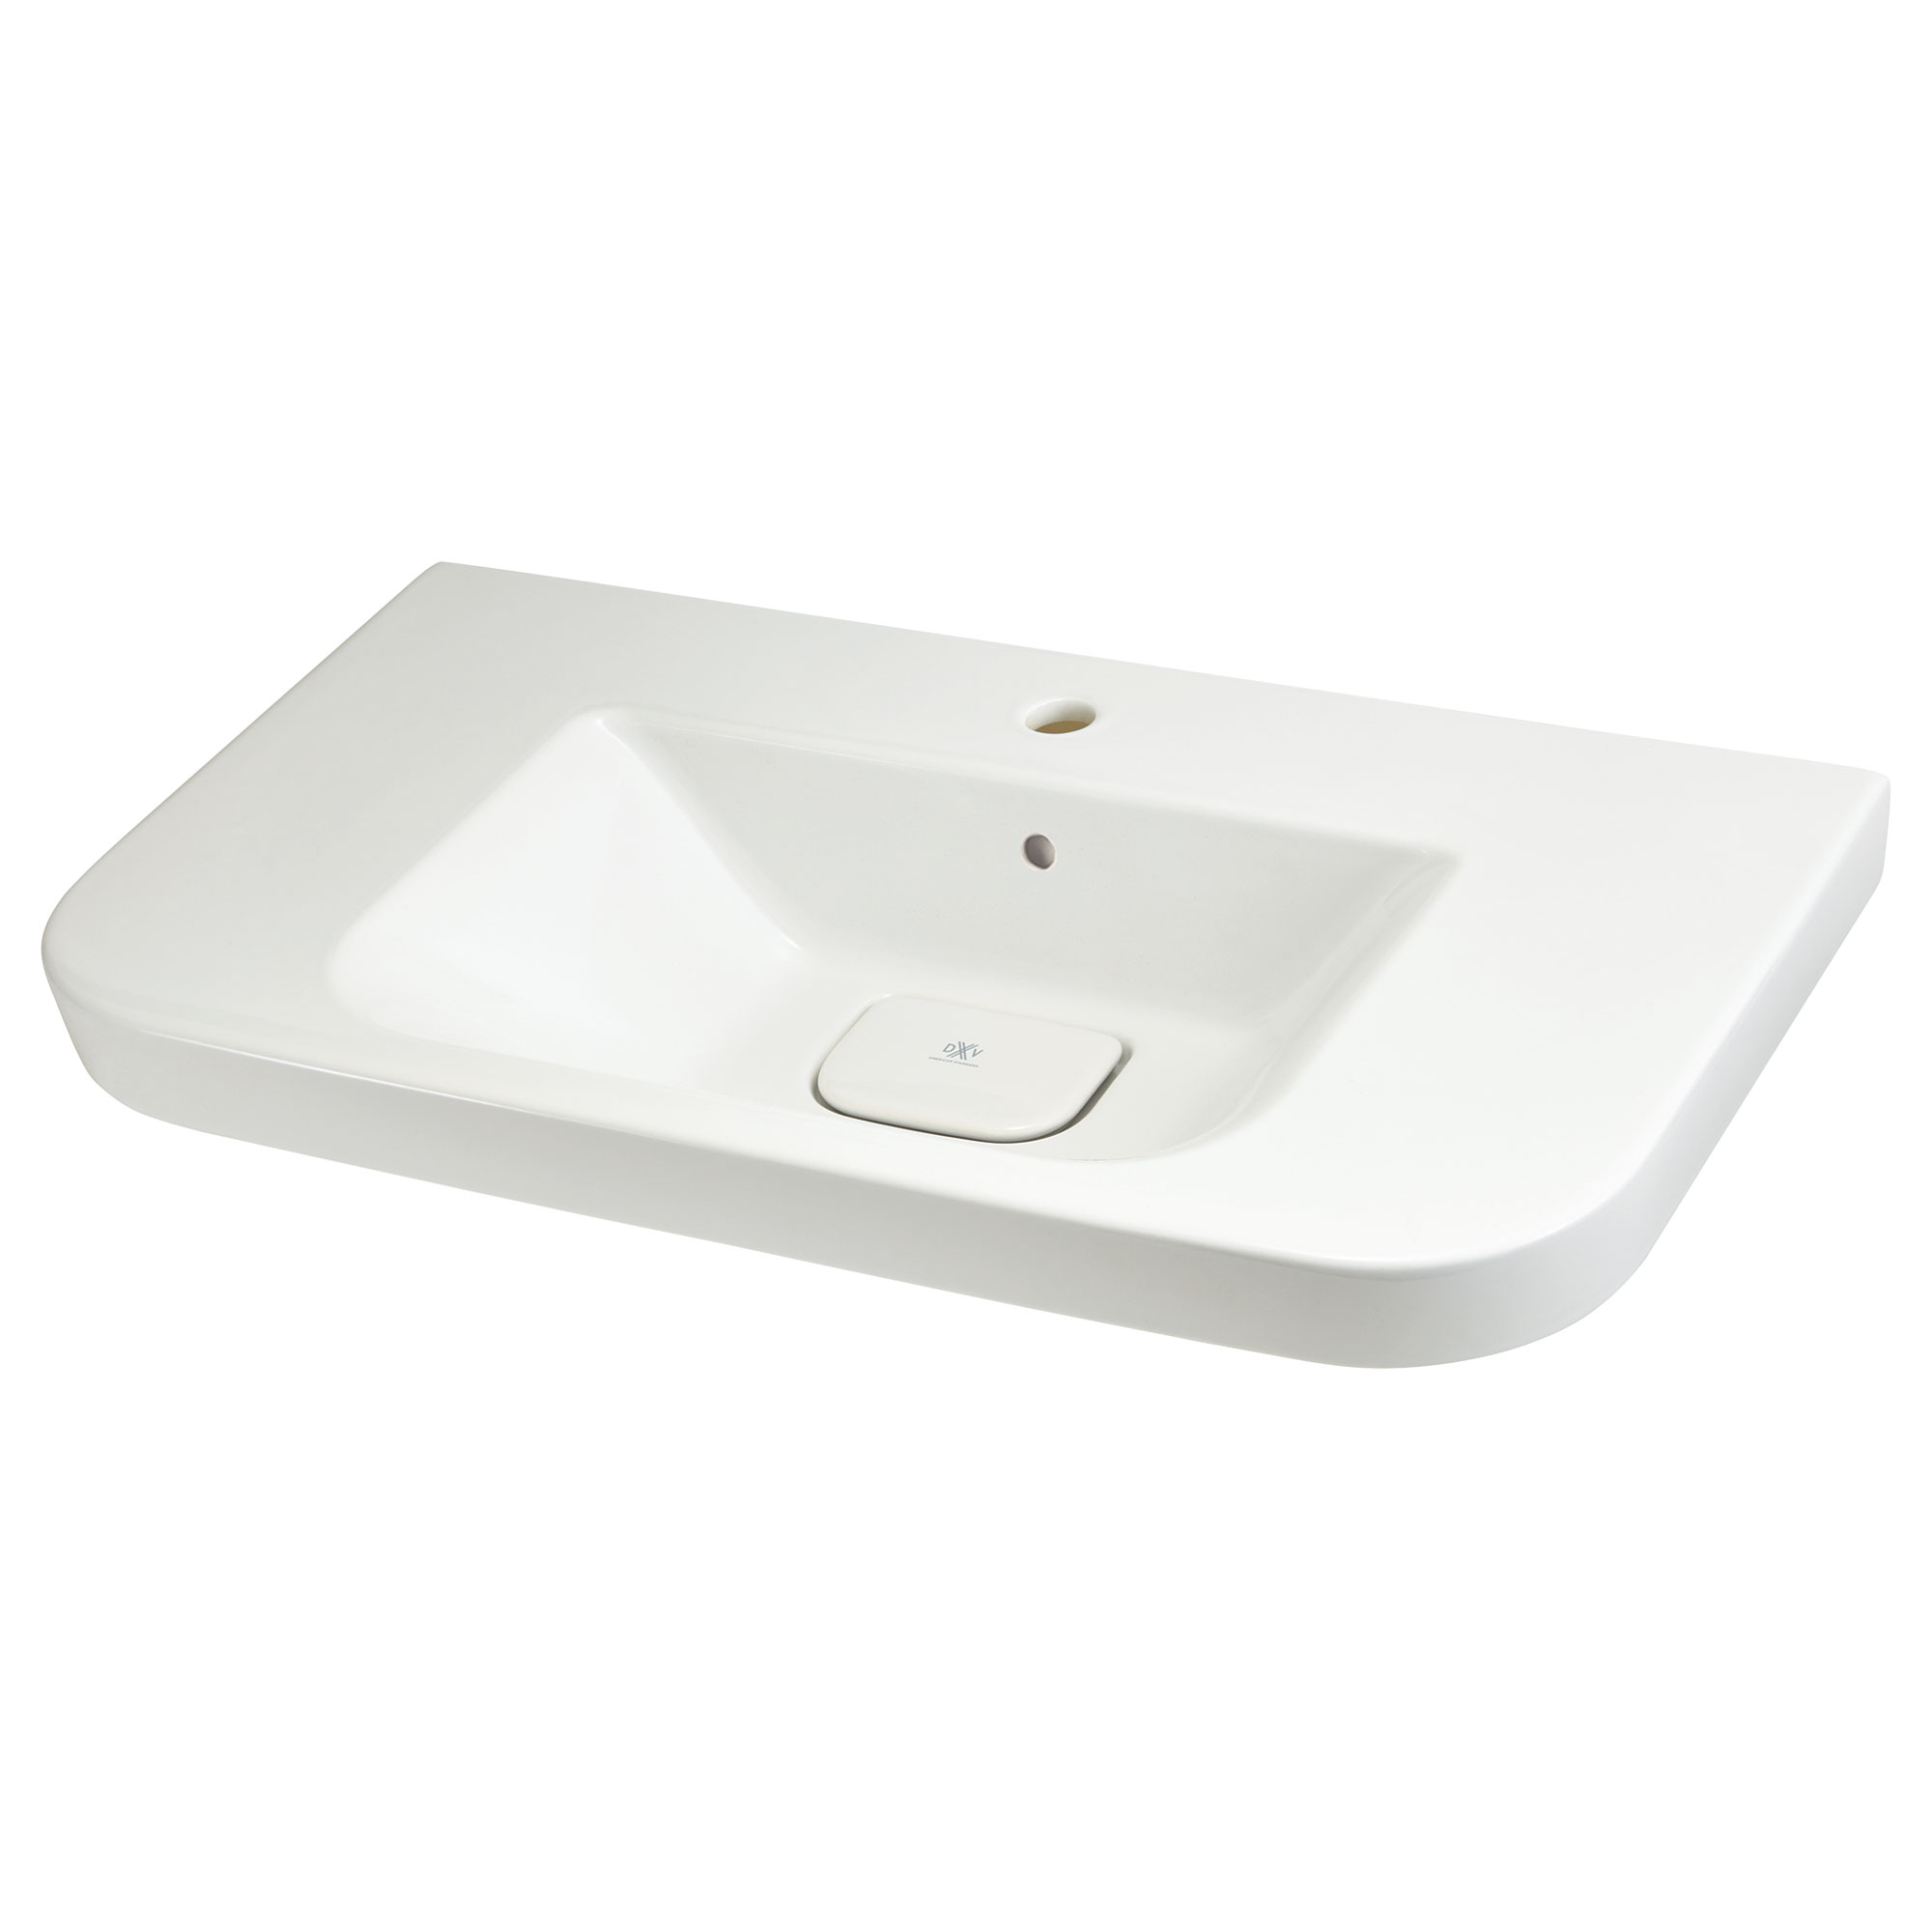 Equility 33-inch Single Hole Wall-Hung Bathroom Sink - Projects Model